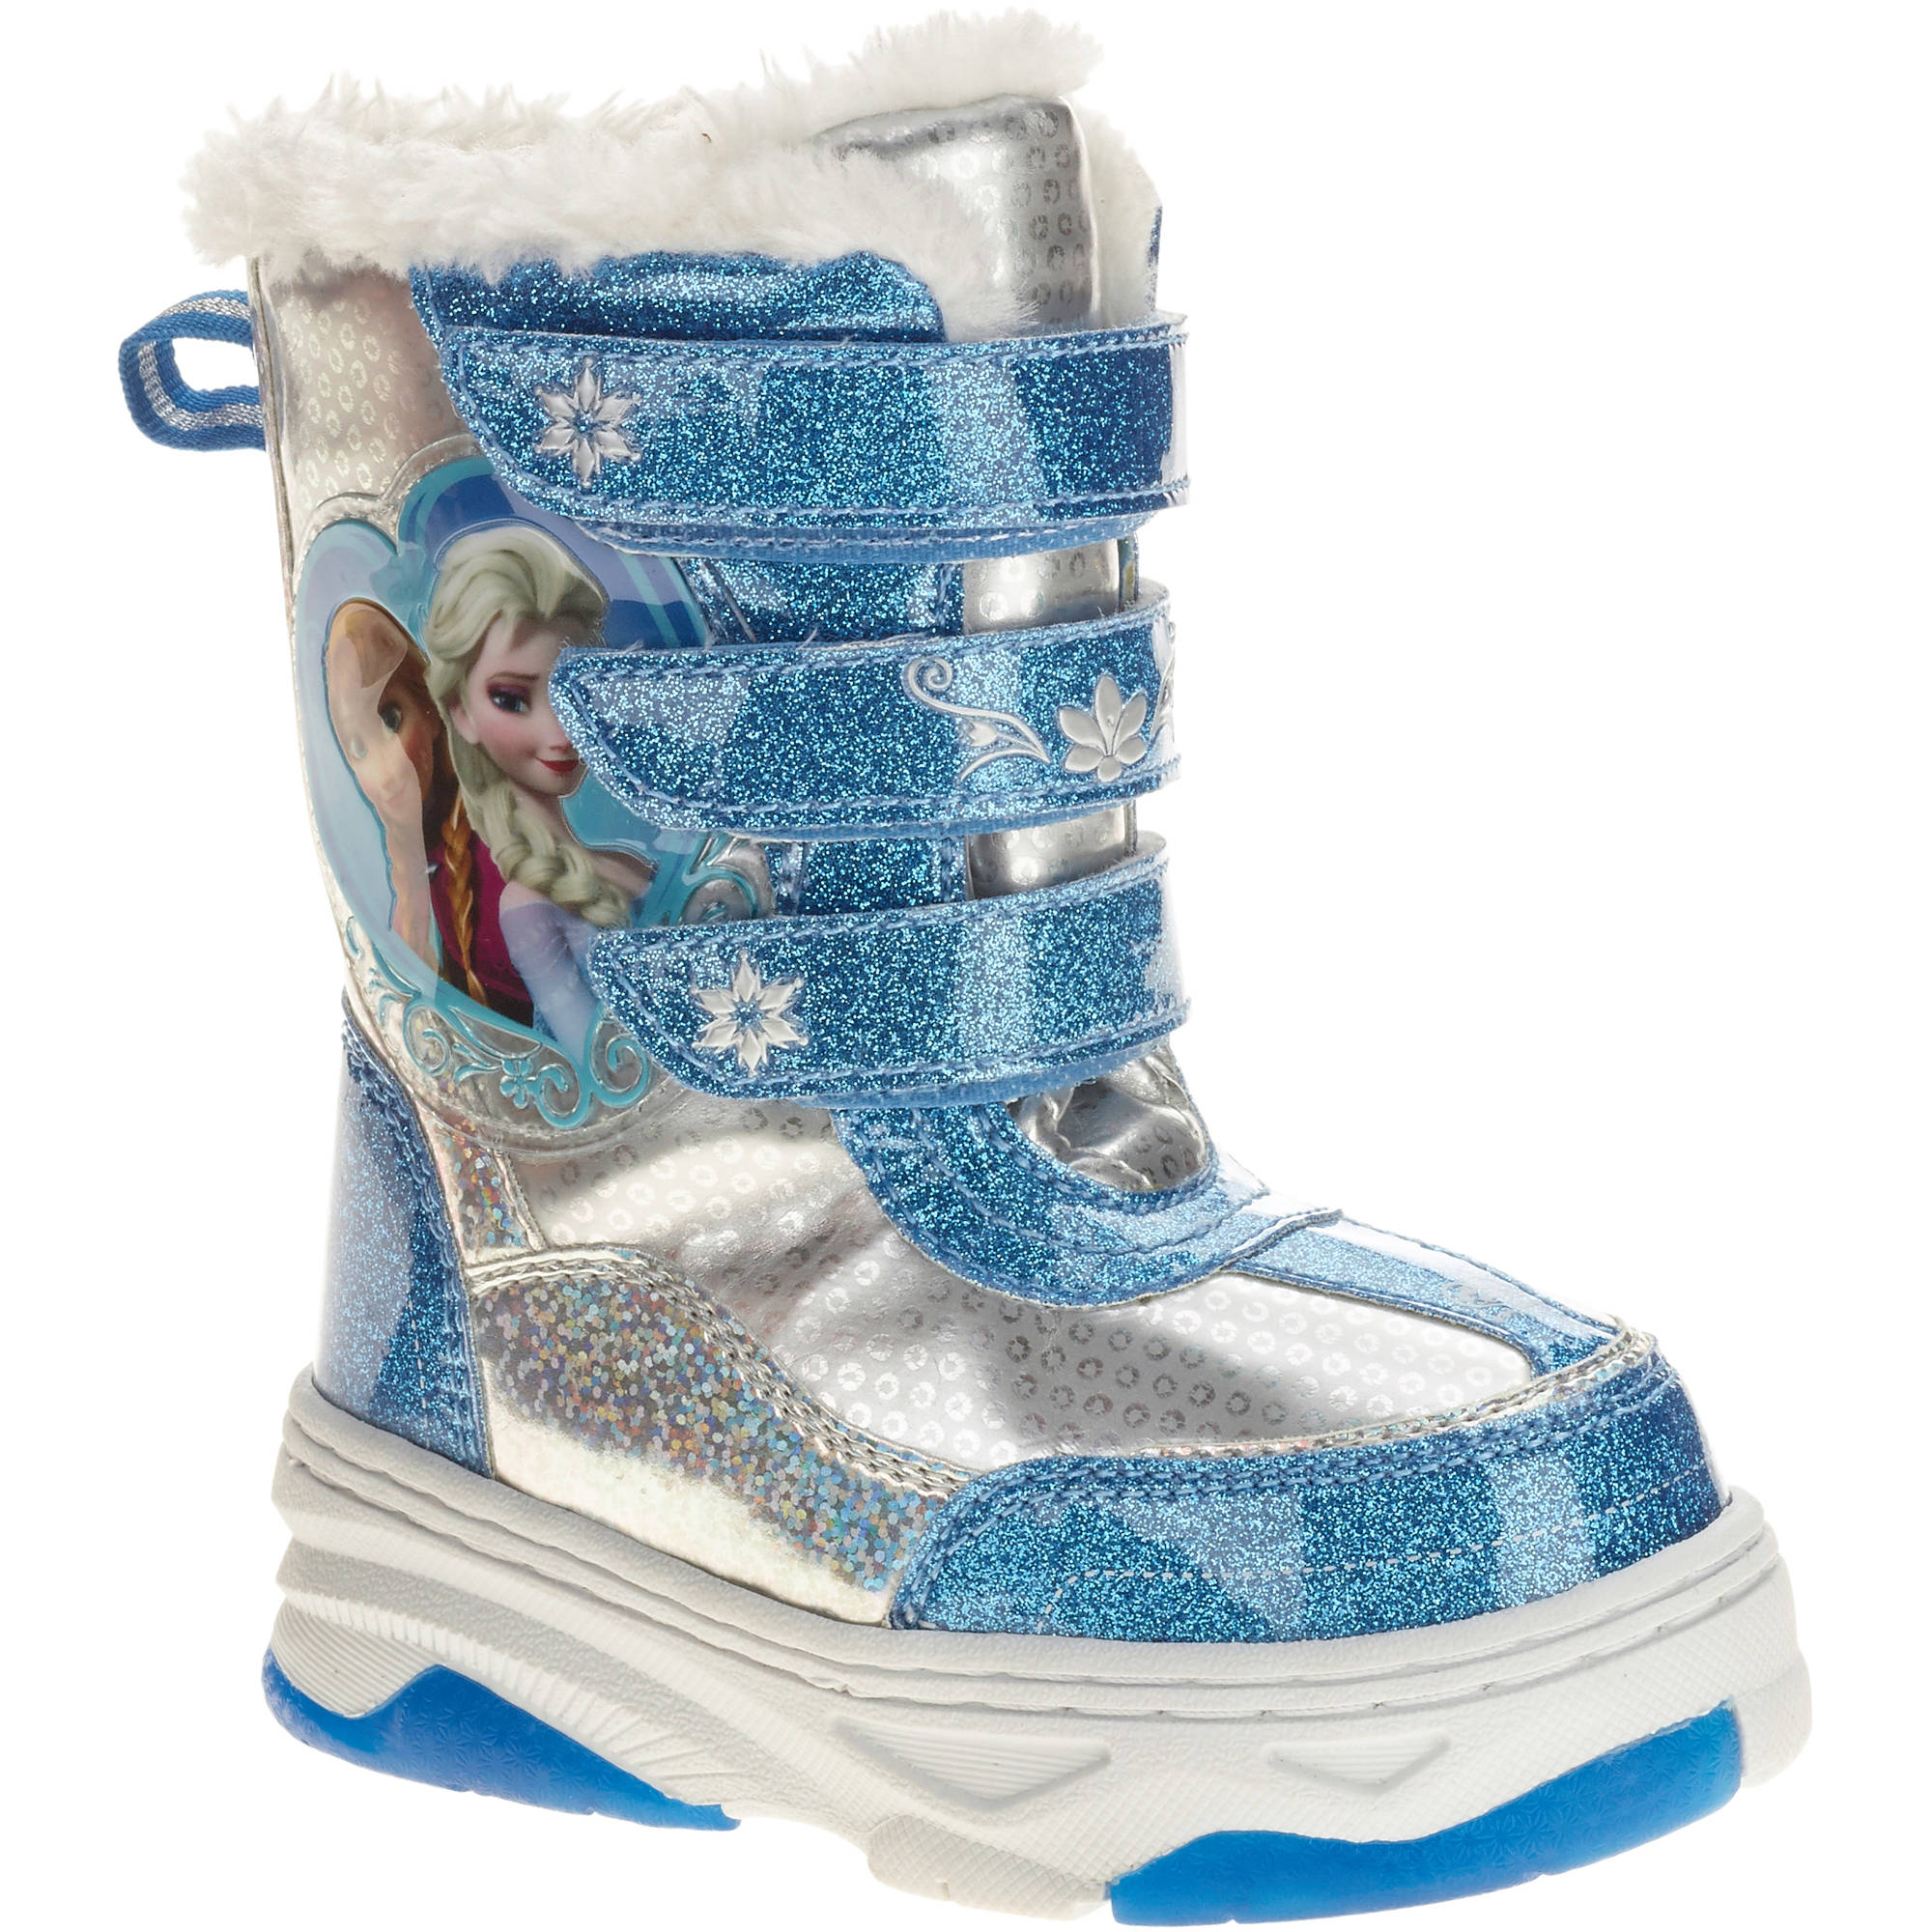 Frozen Toddler Girl's Winter Boot